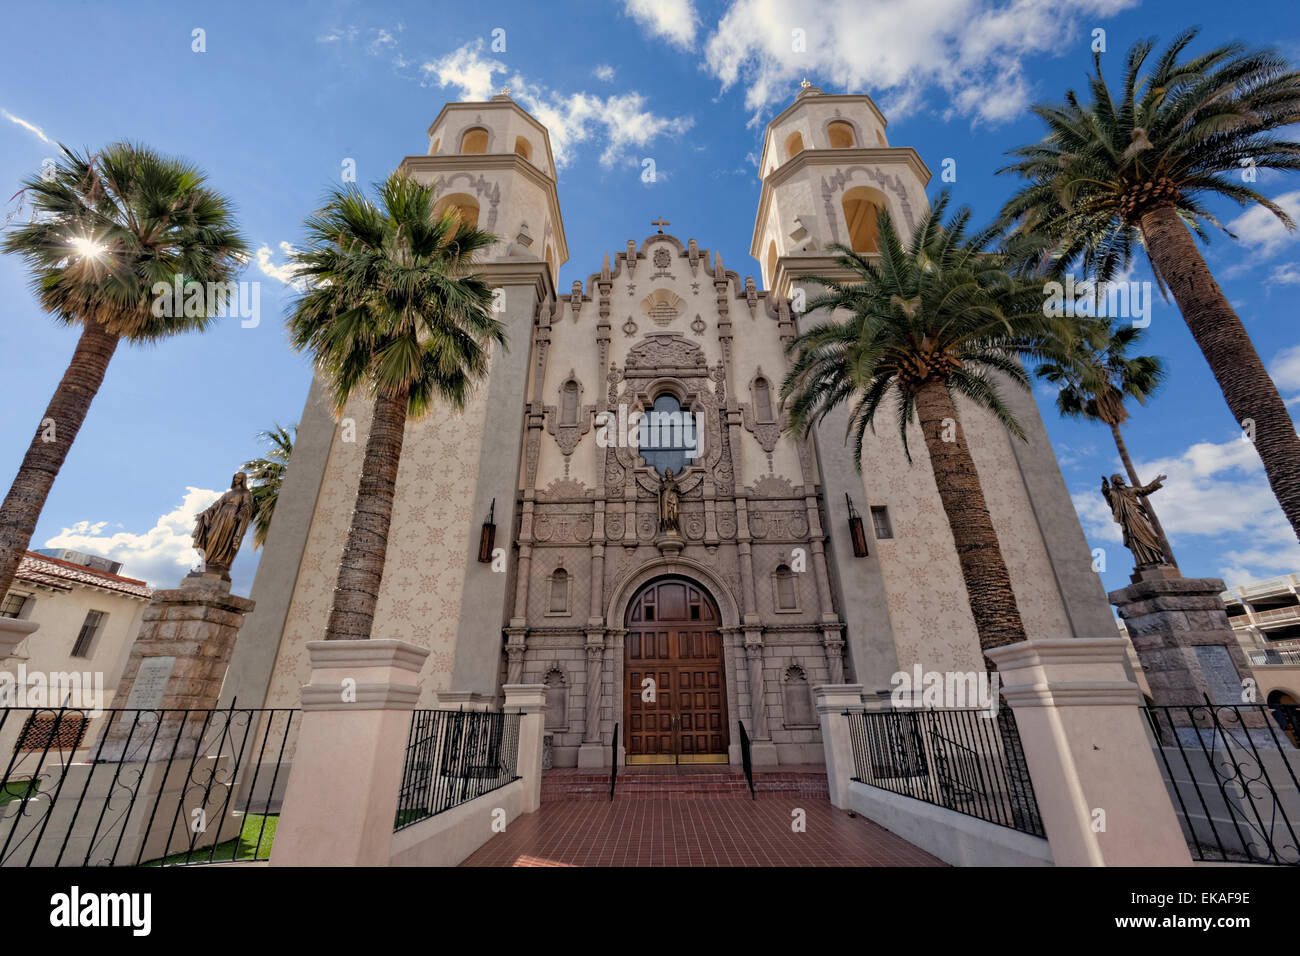 Cathedral of St. Augustine, Tucson, AZ - Stock Image